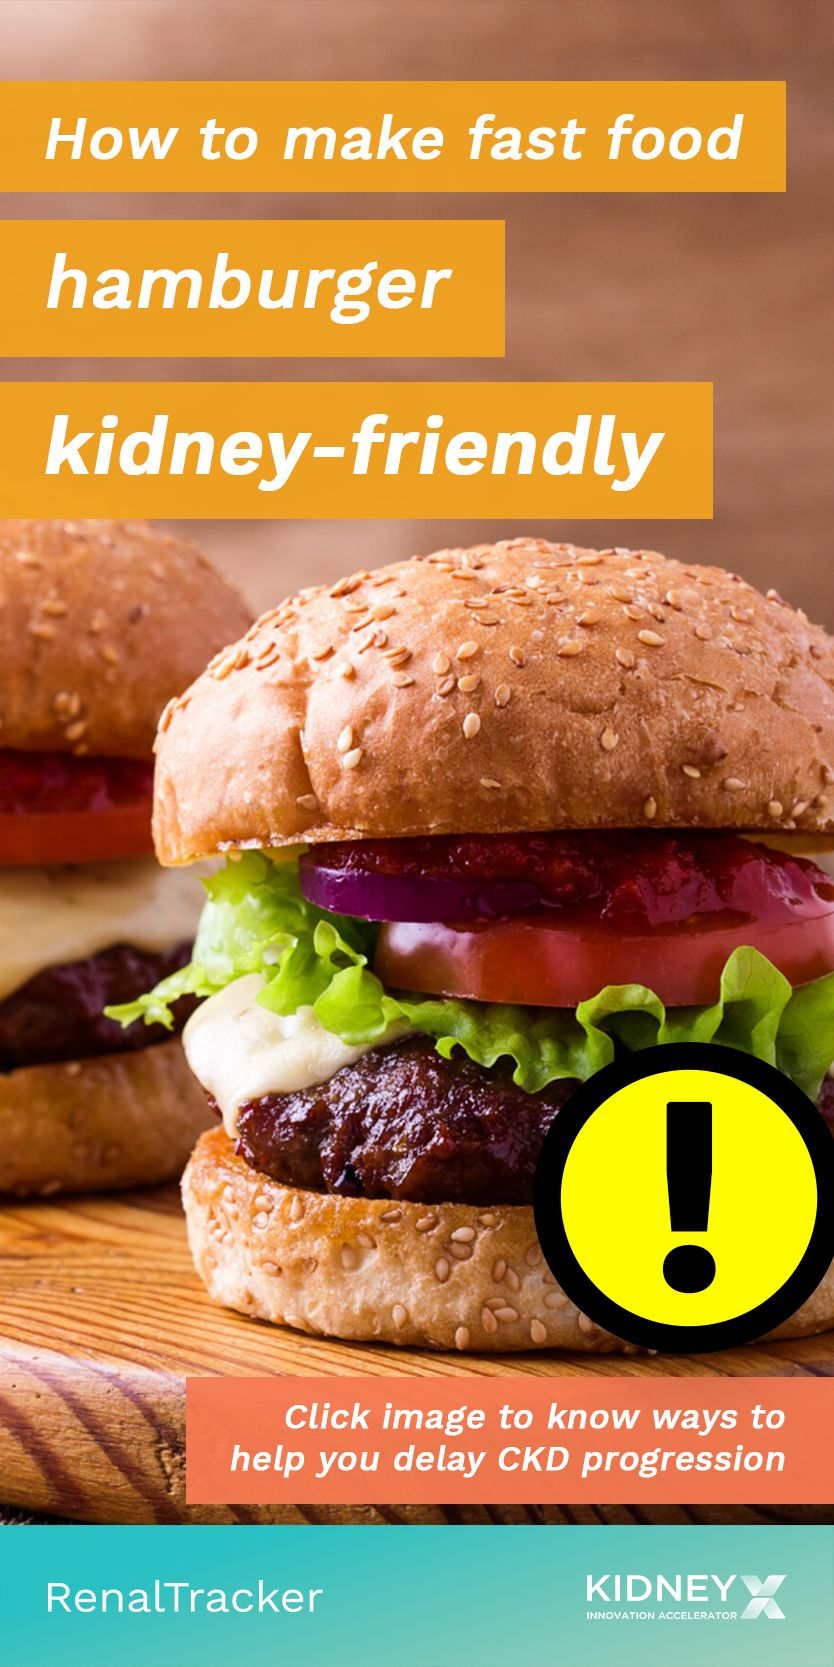 fast food allowed on renal diet